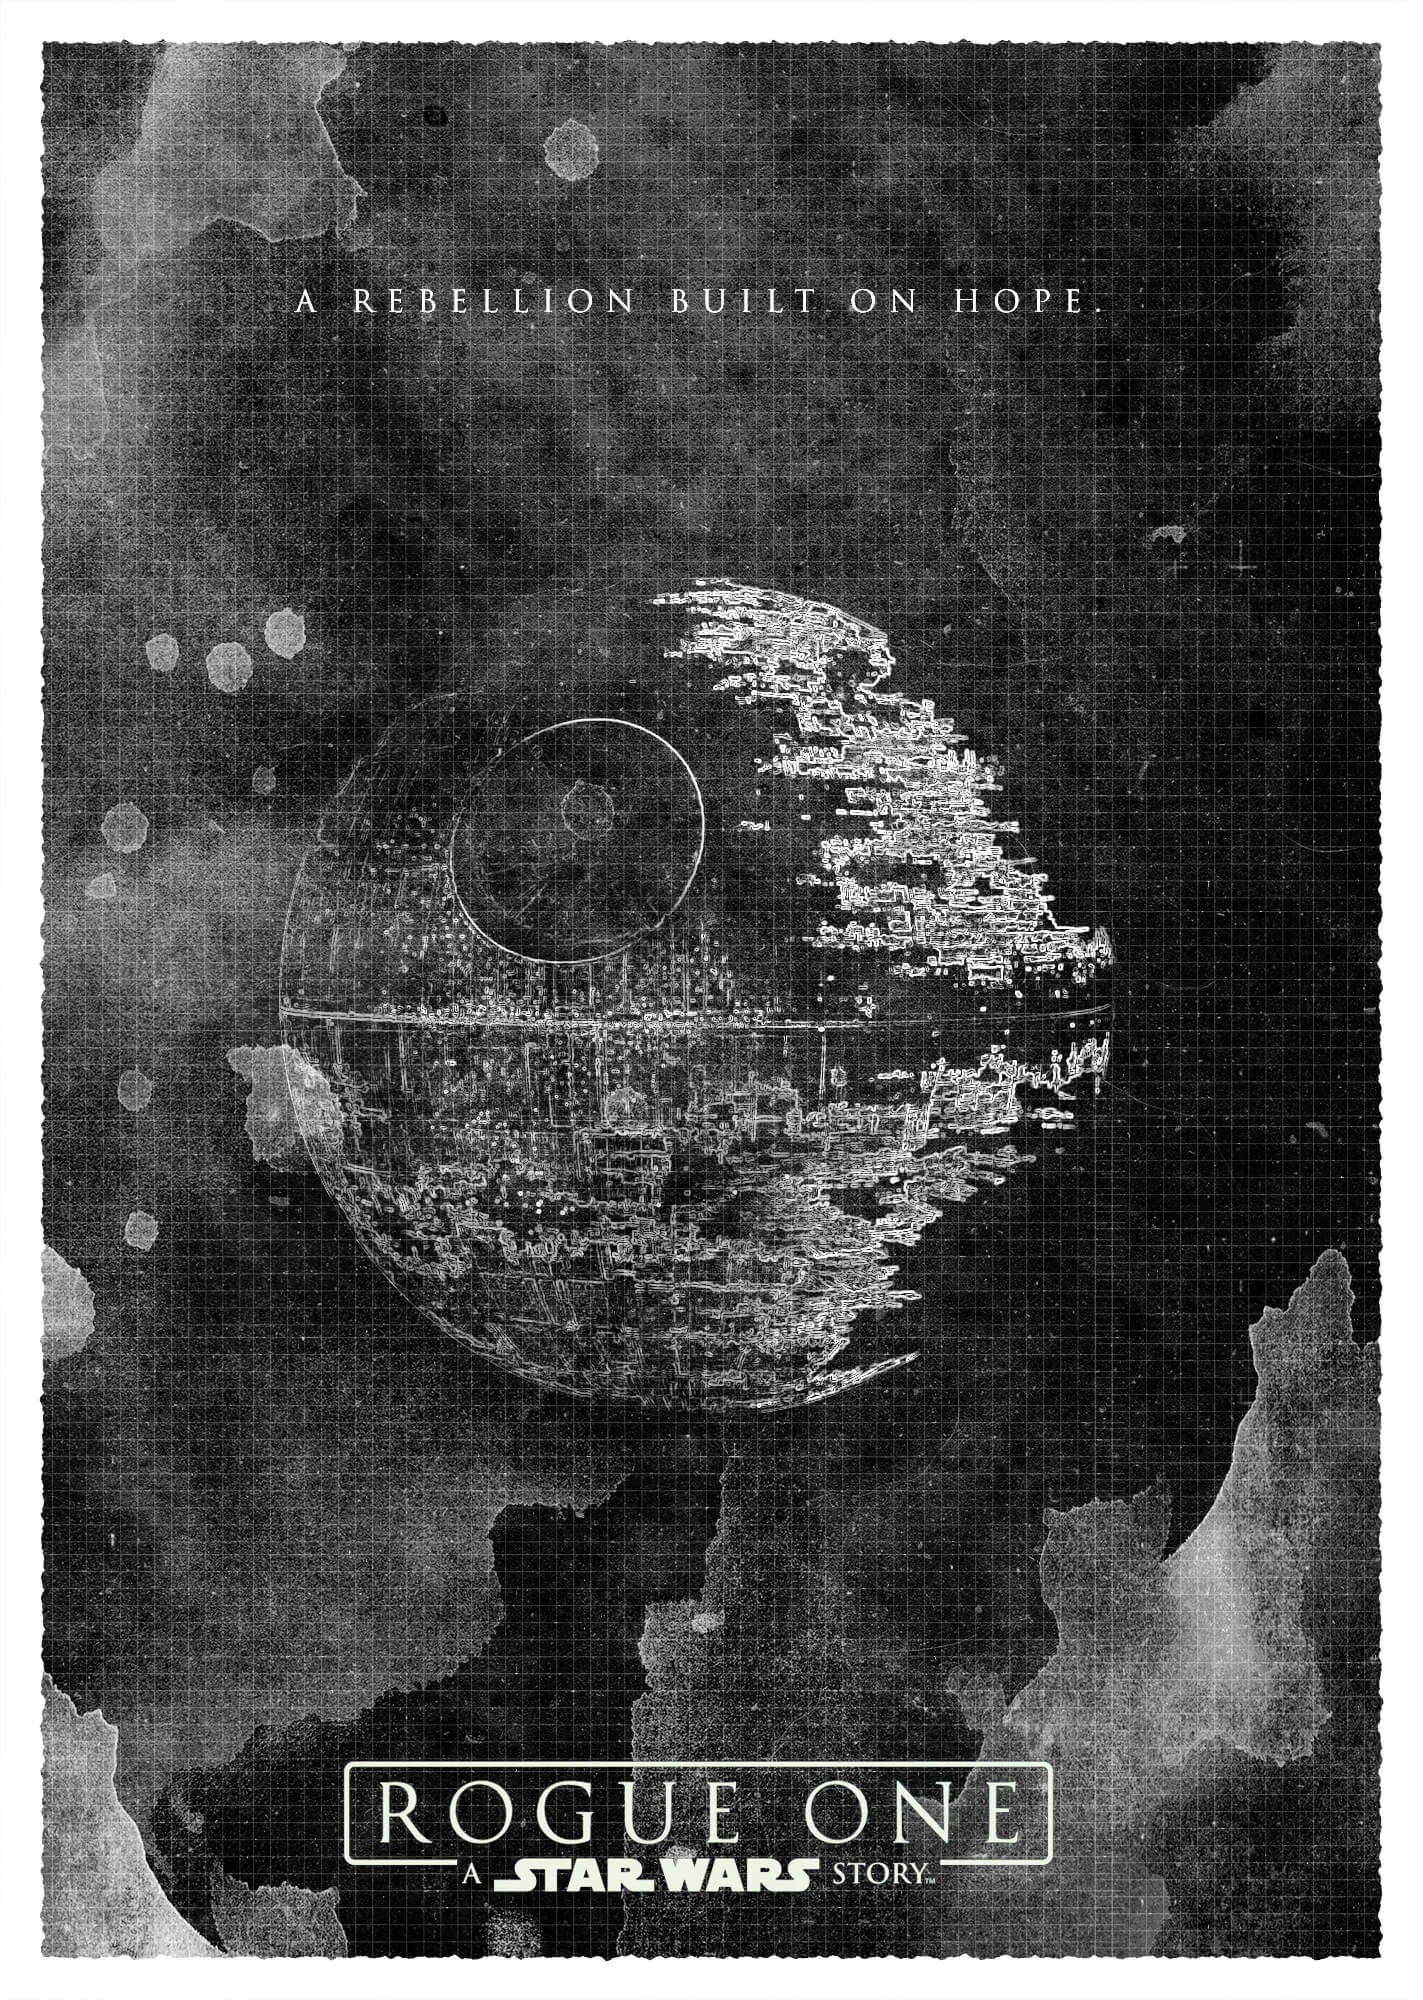 Start Wars Rogue One Poster